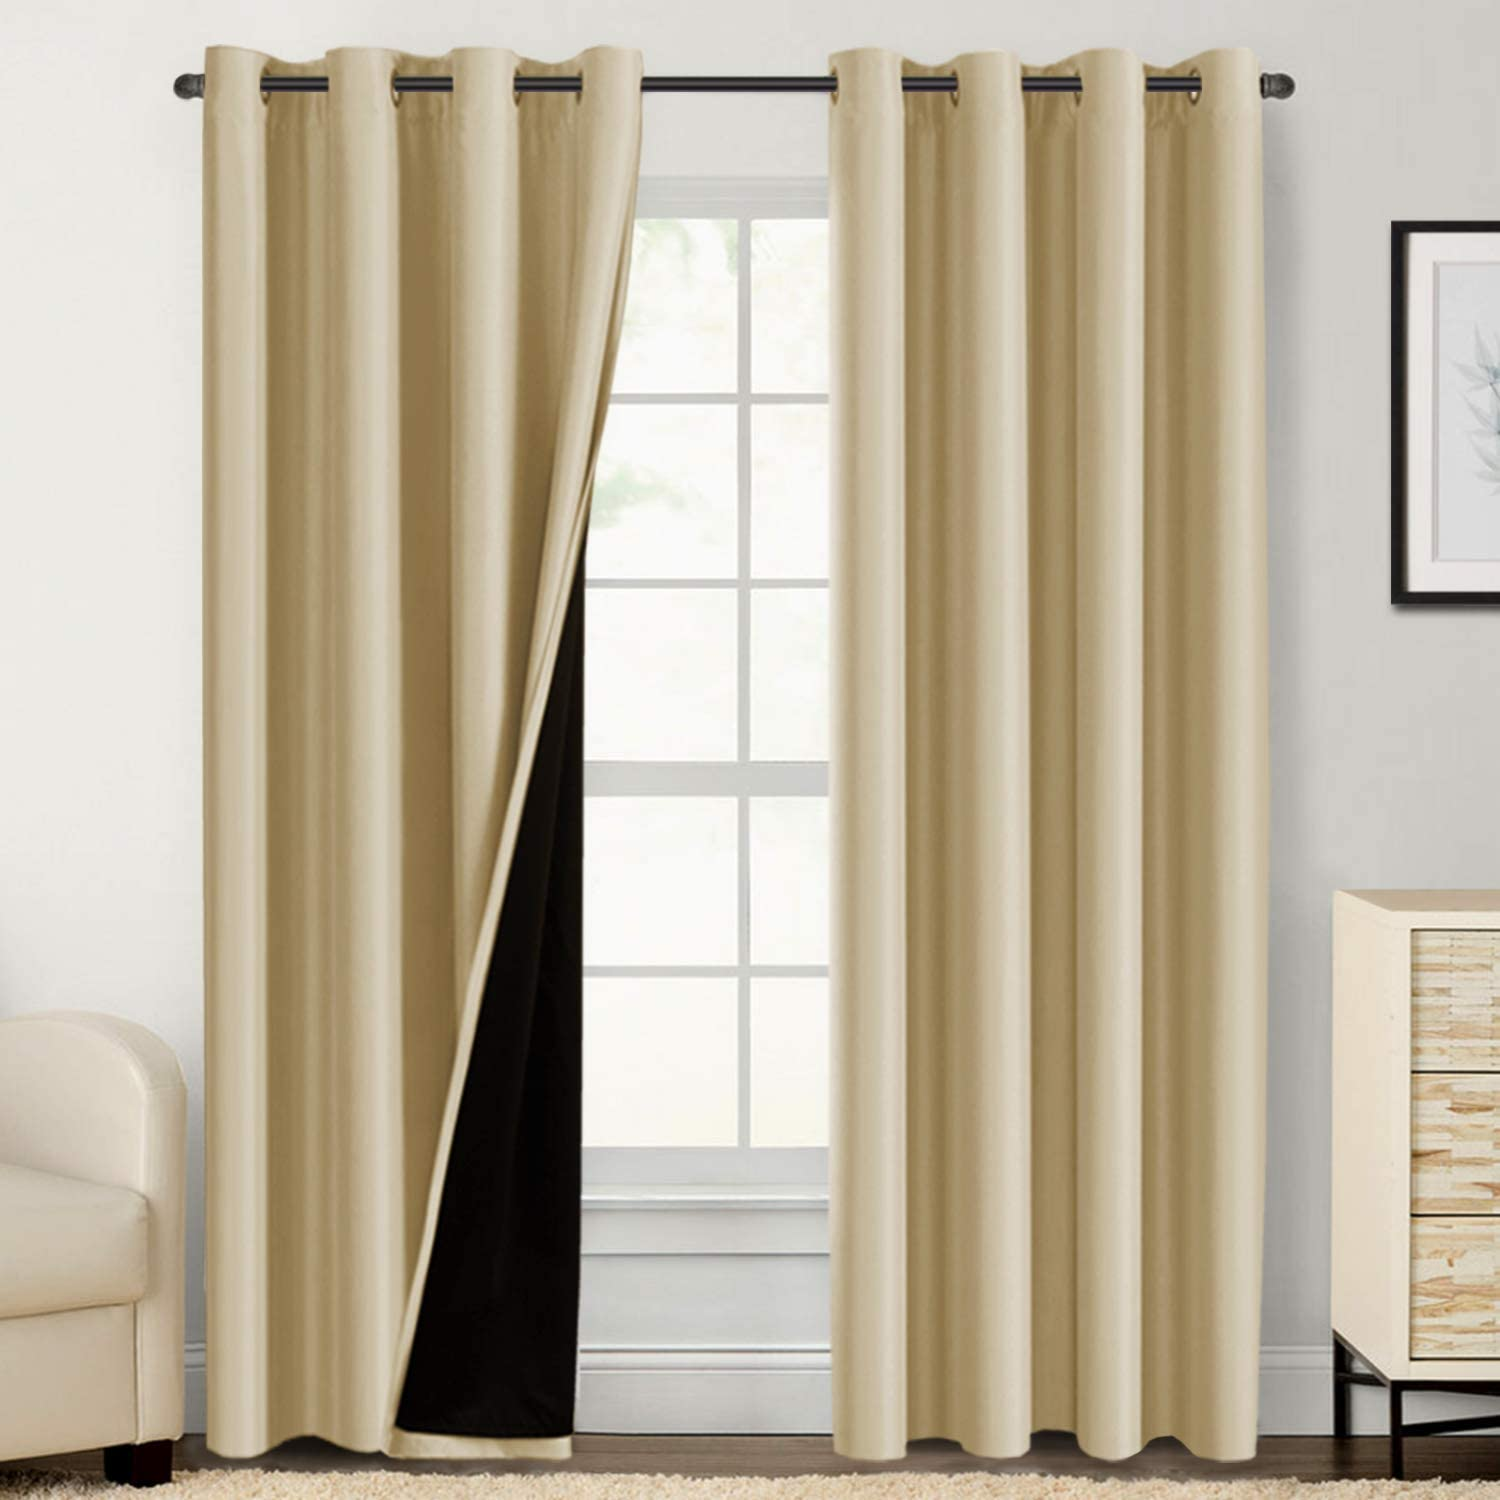 Double Layer 100% Blackout Curtains for Bedroom 96 Inches Long Thermal Insulated Lined Curtains for Living Room | Full Light Blocking Energy Saving Grommet Drapes Draperies, 2 Panels, Wheat